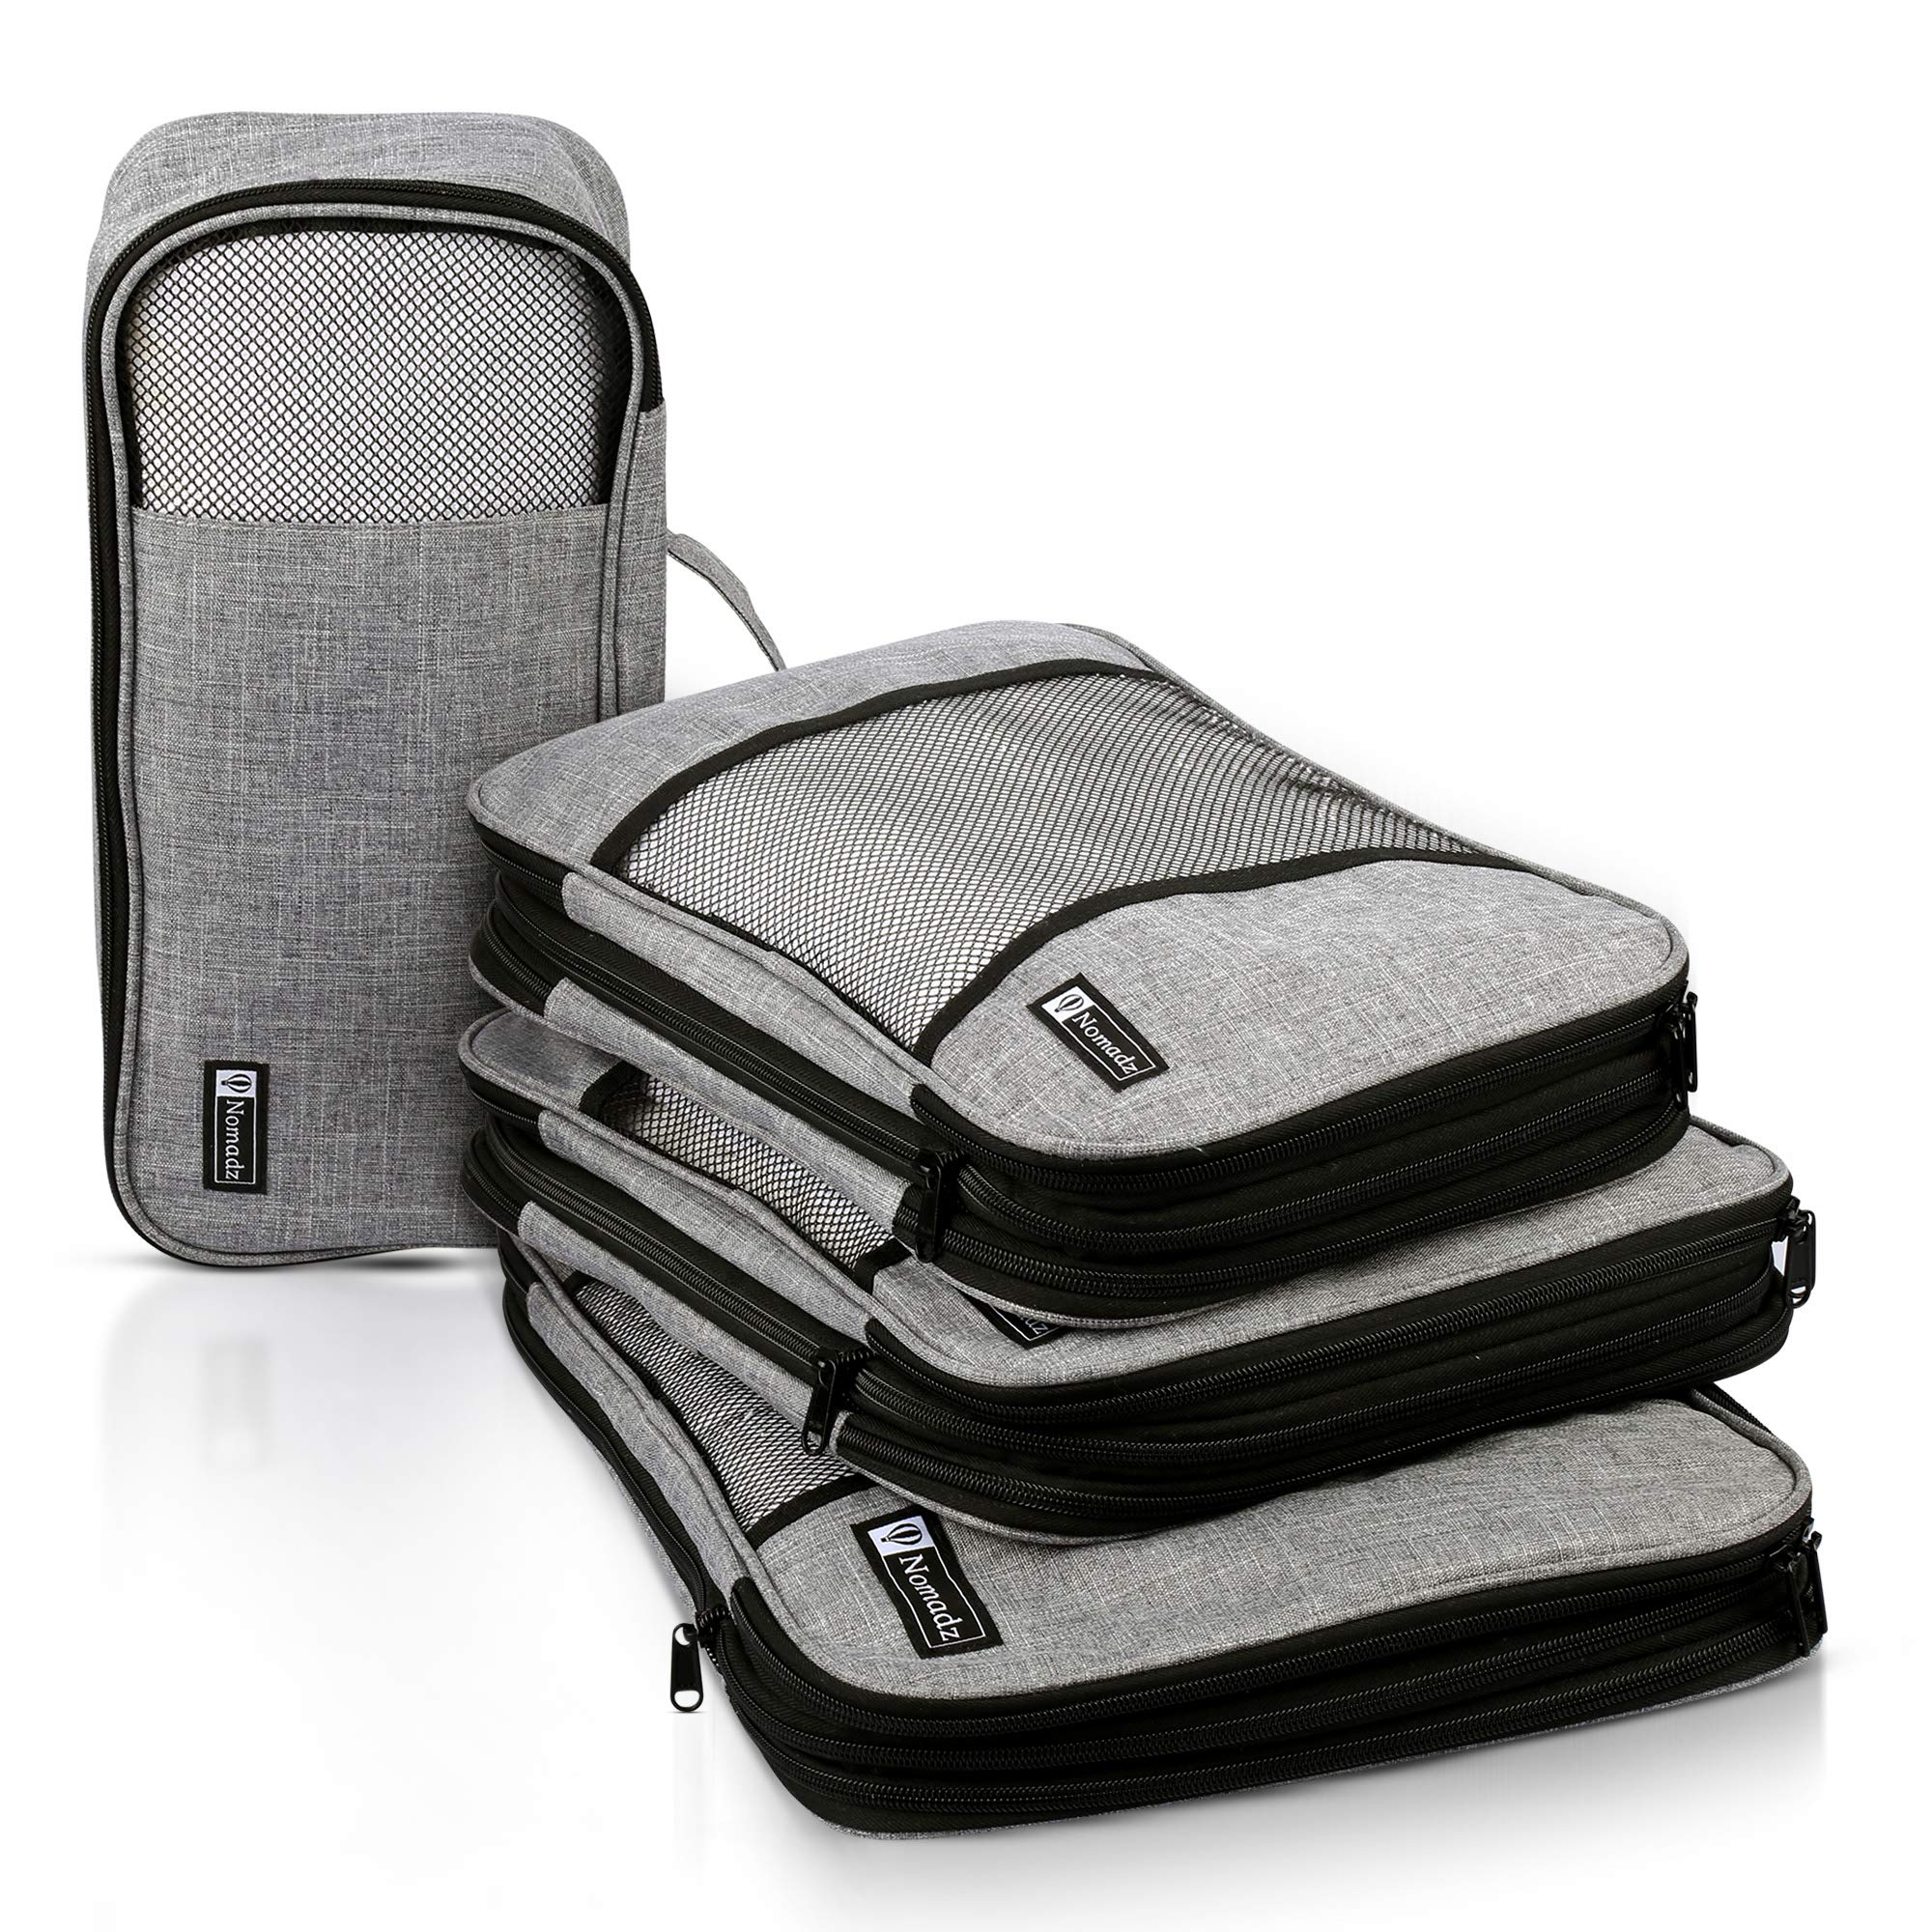 Compression Packing Cubes Travel Luggage-Organizer Set Packs More in Less Space (Double Sided) by Nomadz